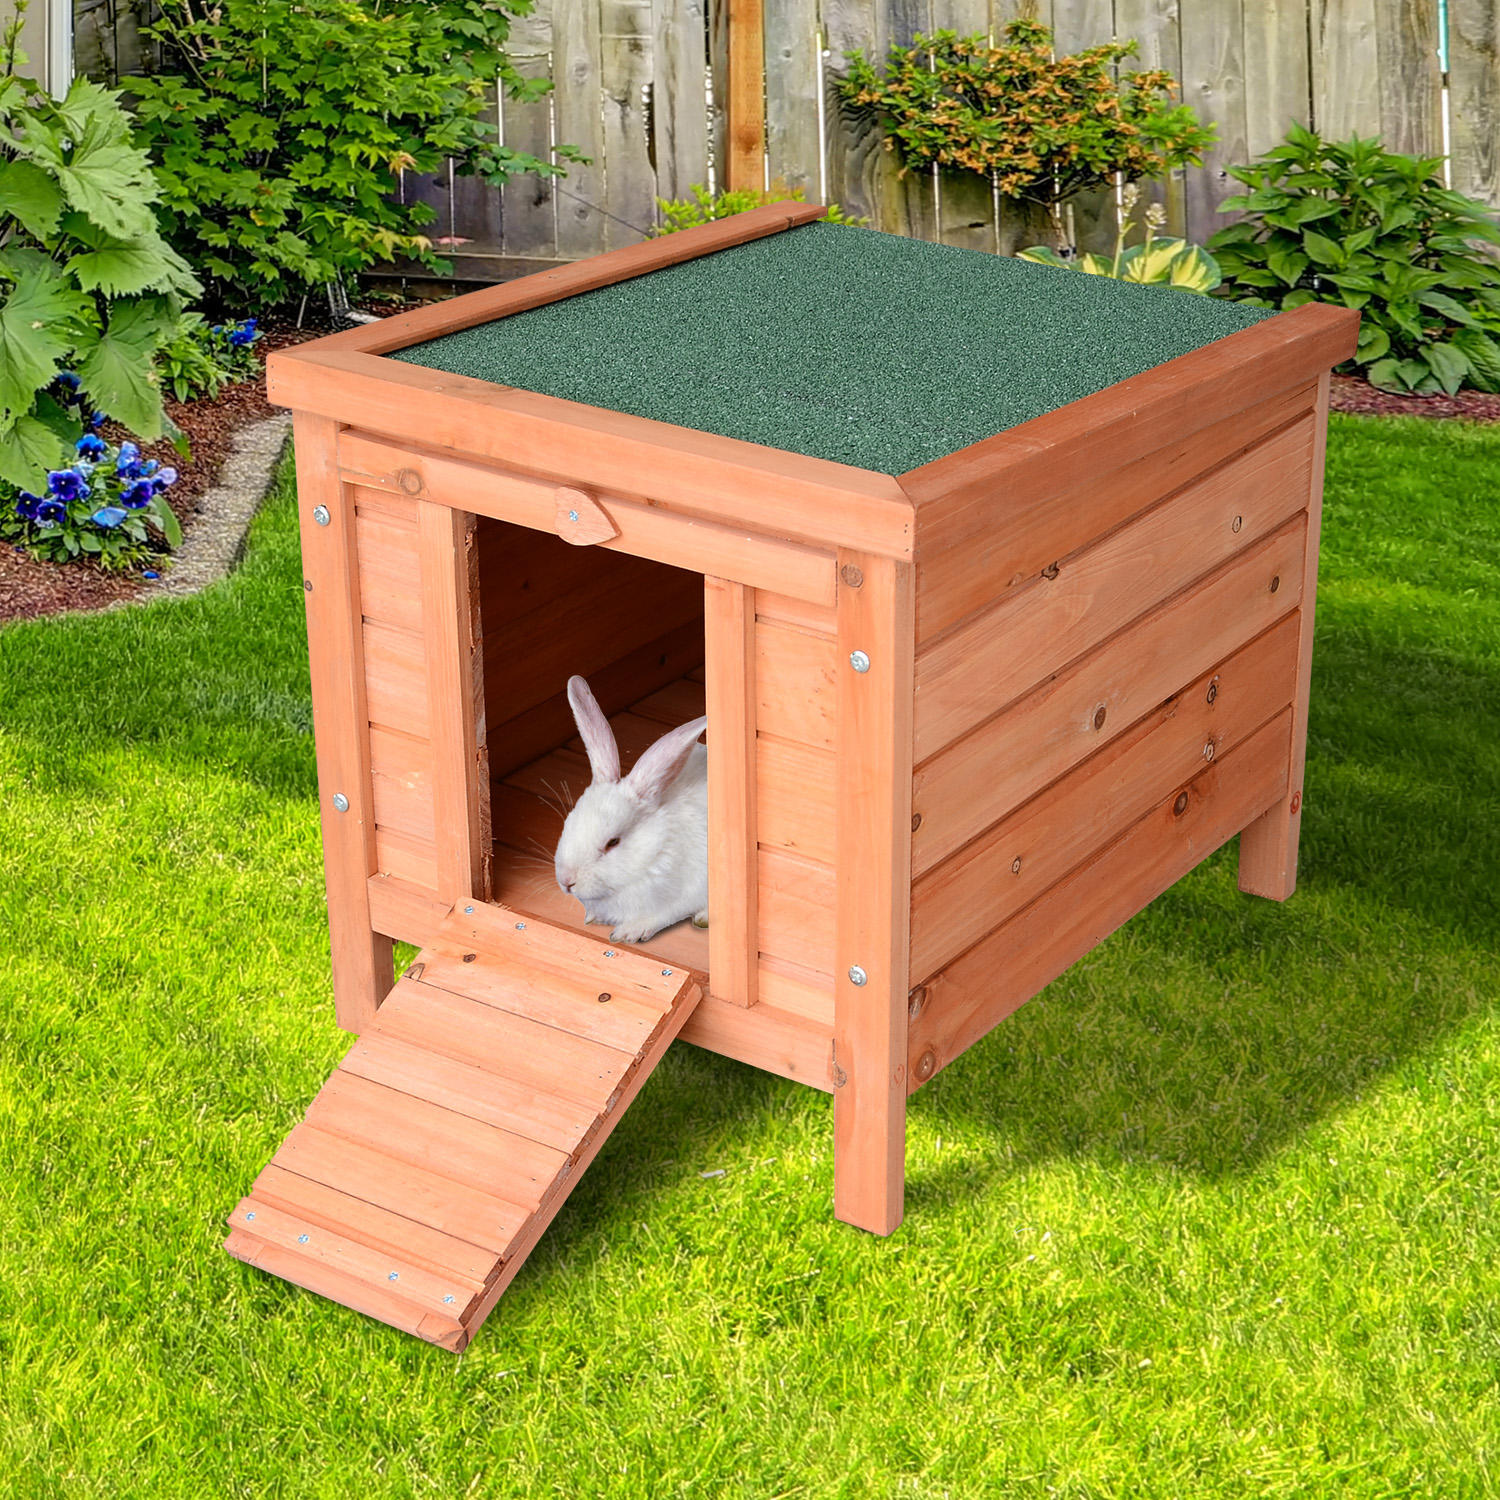 Details about PawHut Wooden Rabbit Hutch 20'' Pet Habitat Cages Bunny on inside small doors, inside church designs, inside office designs, inside garage designs, inside small windows, inside small cottages, inside barn designs, inside small houses with loft, small staircase designs, micro home designs, small home designs, inside shed designs, inside bar designs, small japanese garden designs, small corner fireplace designs, new home designs, unique small kitchen designs, inside fireplace designs, inside mobile home designs, unique home designs,